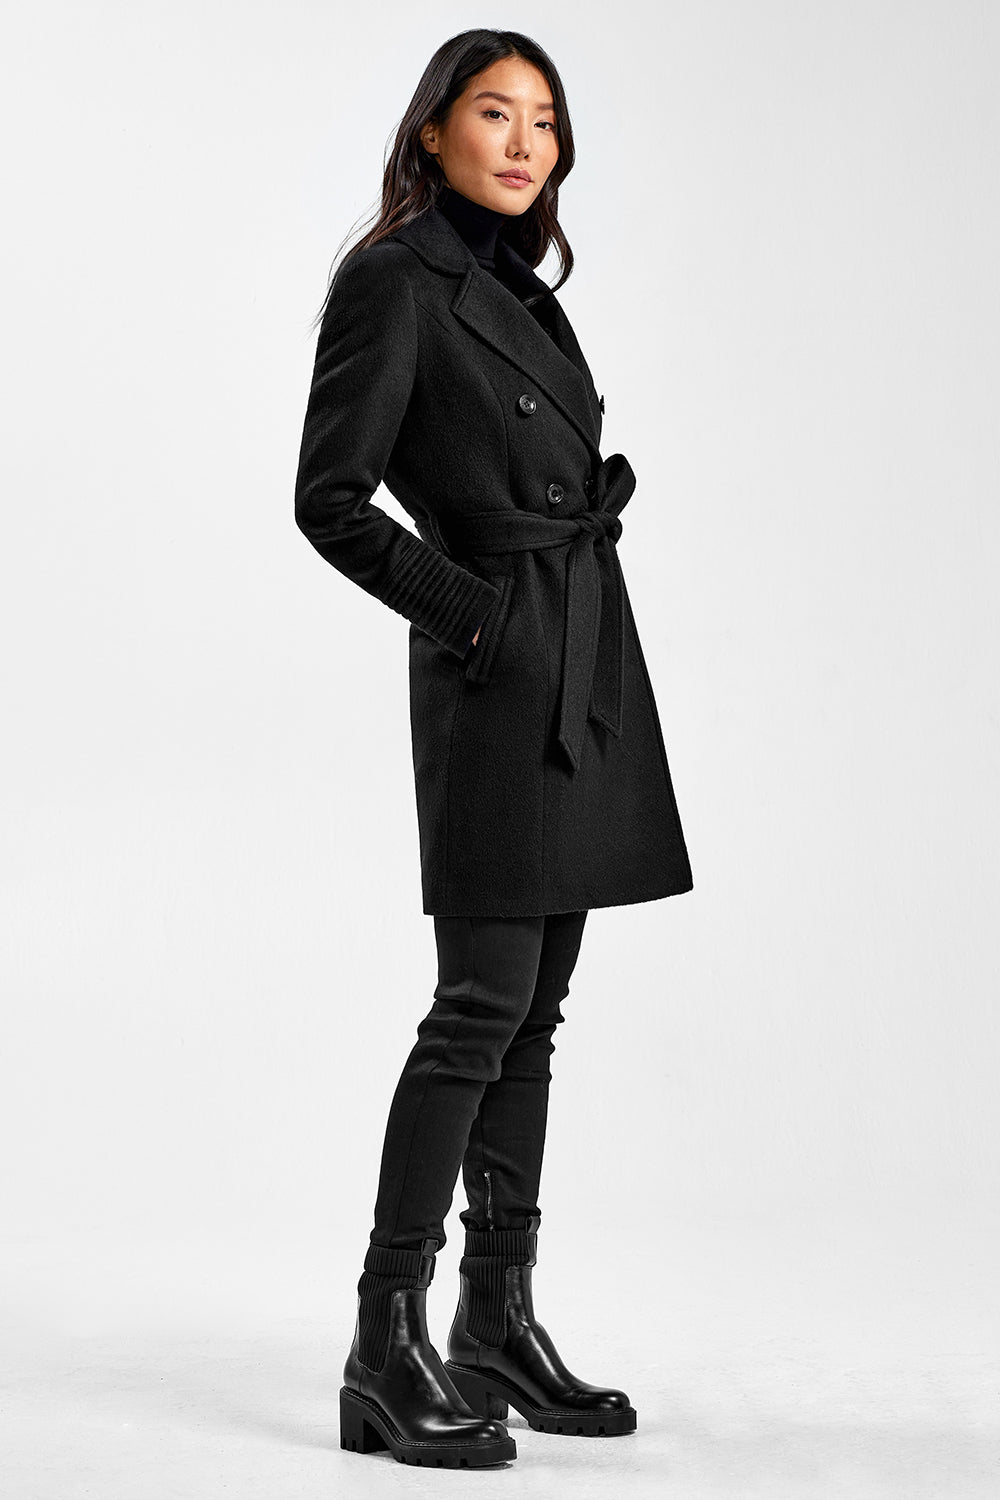 Sentaler Mid Length Double Breasted Coat featured in Baby Alpaca and available in Black. Seen from side.